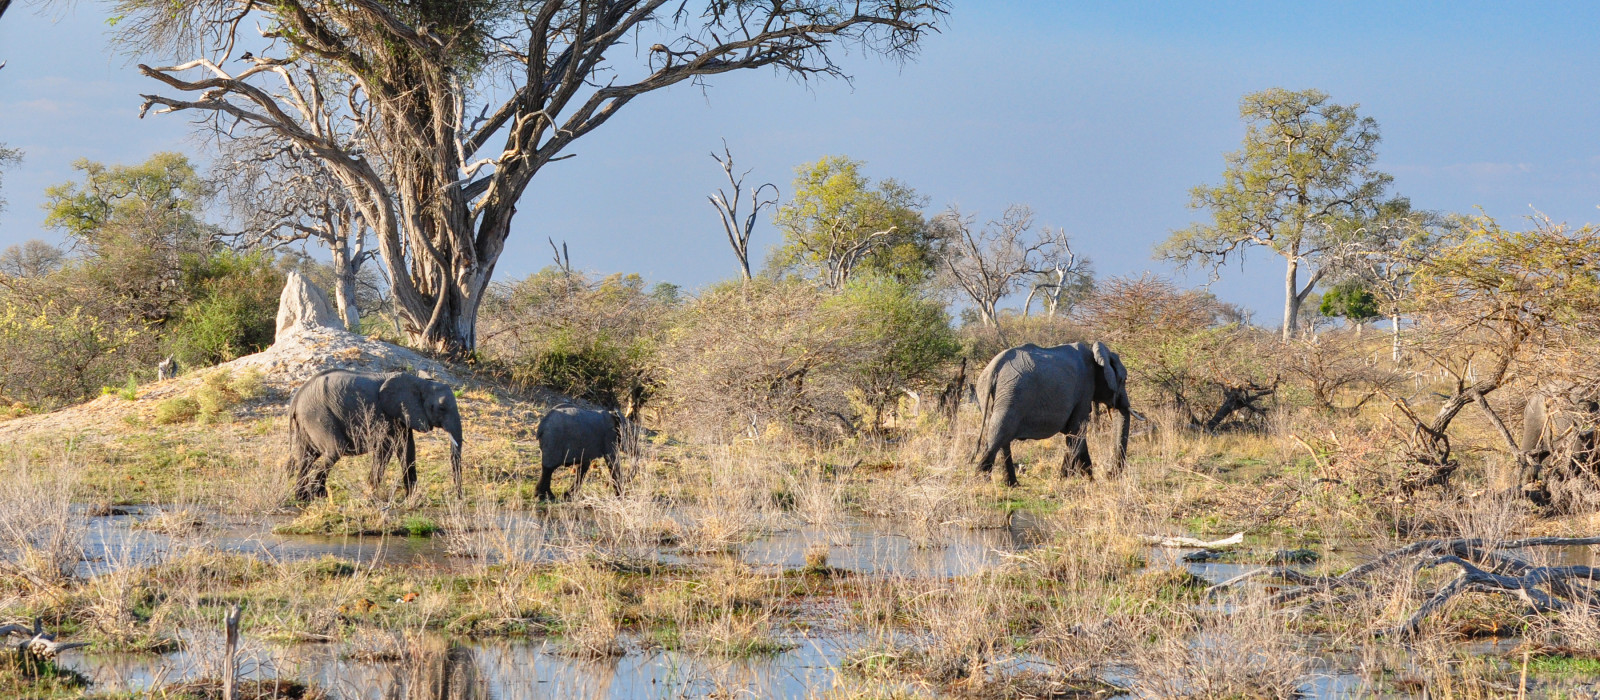 small herd of elephants walking through Botswana Okanvango delta with grasses and tree in background